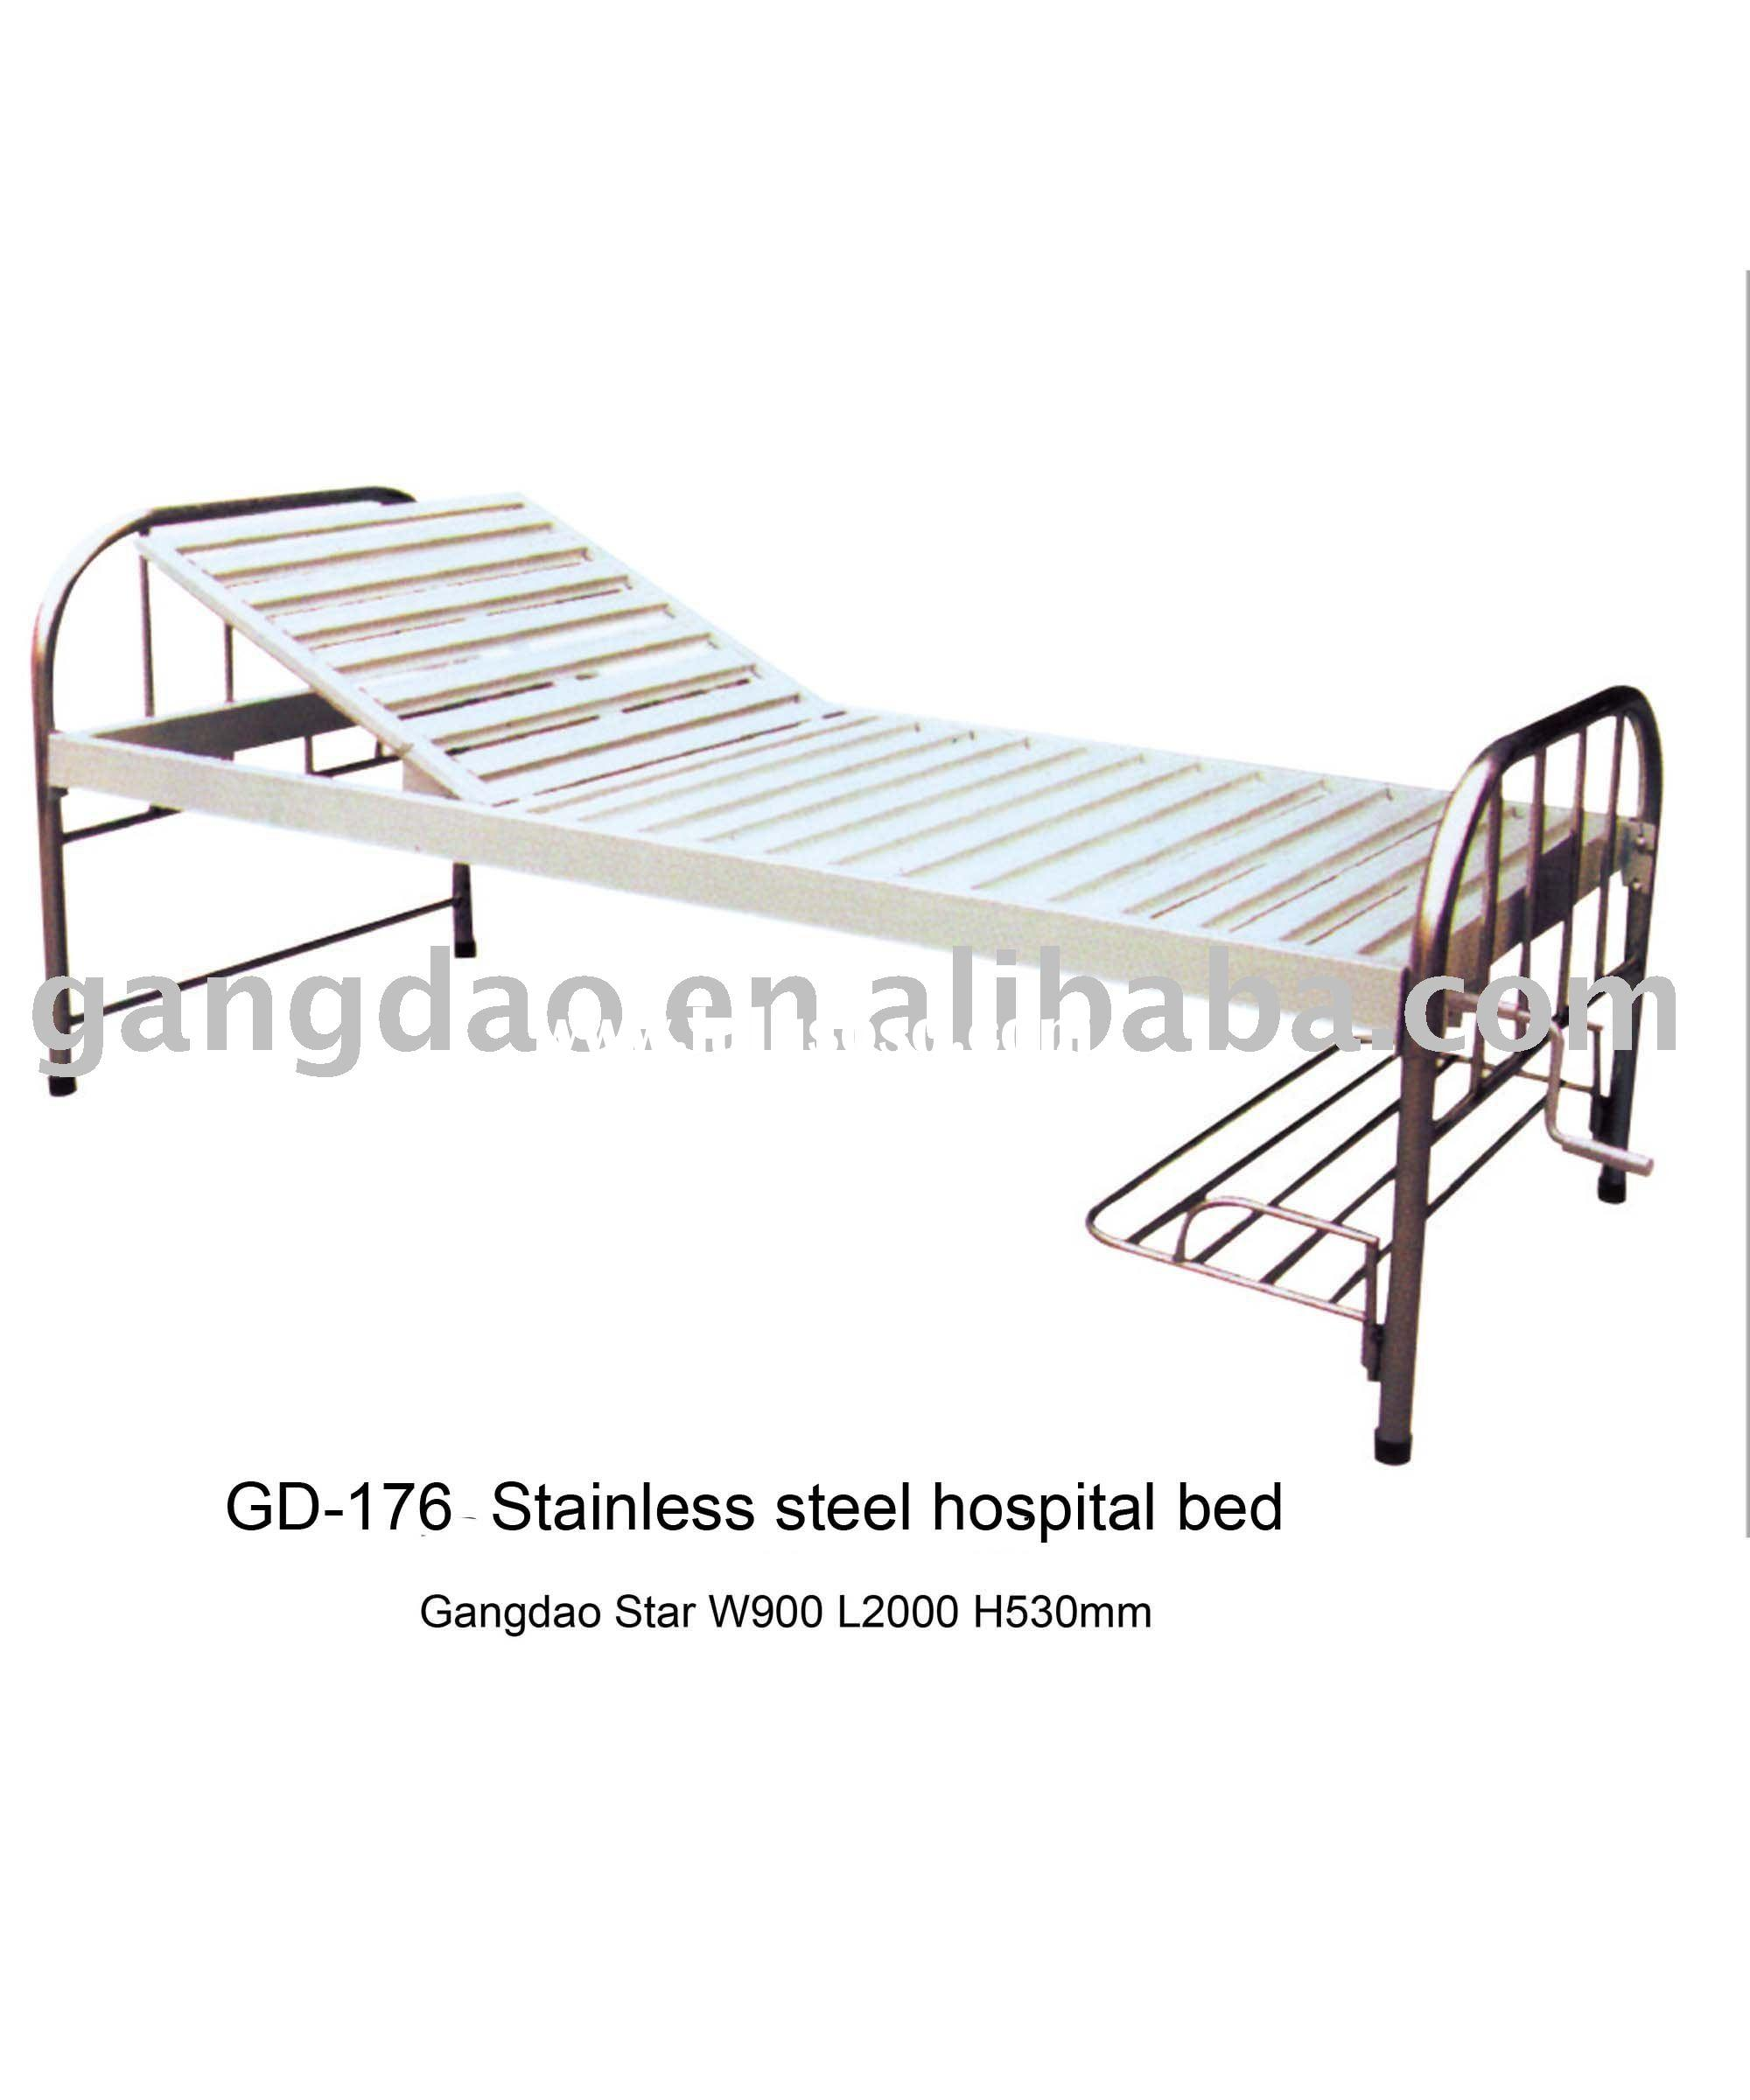 Hospital Beds | Home-Quality Bed Frames | Facility-Quality Beds